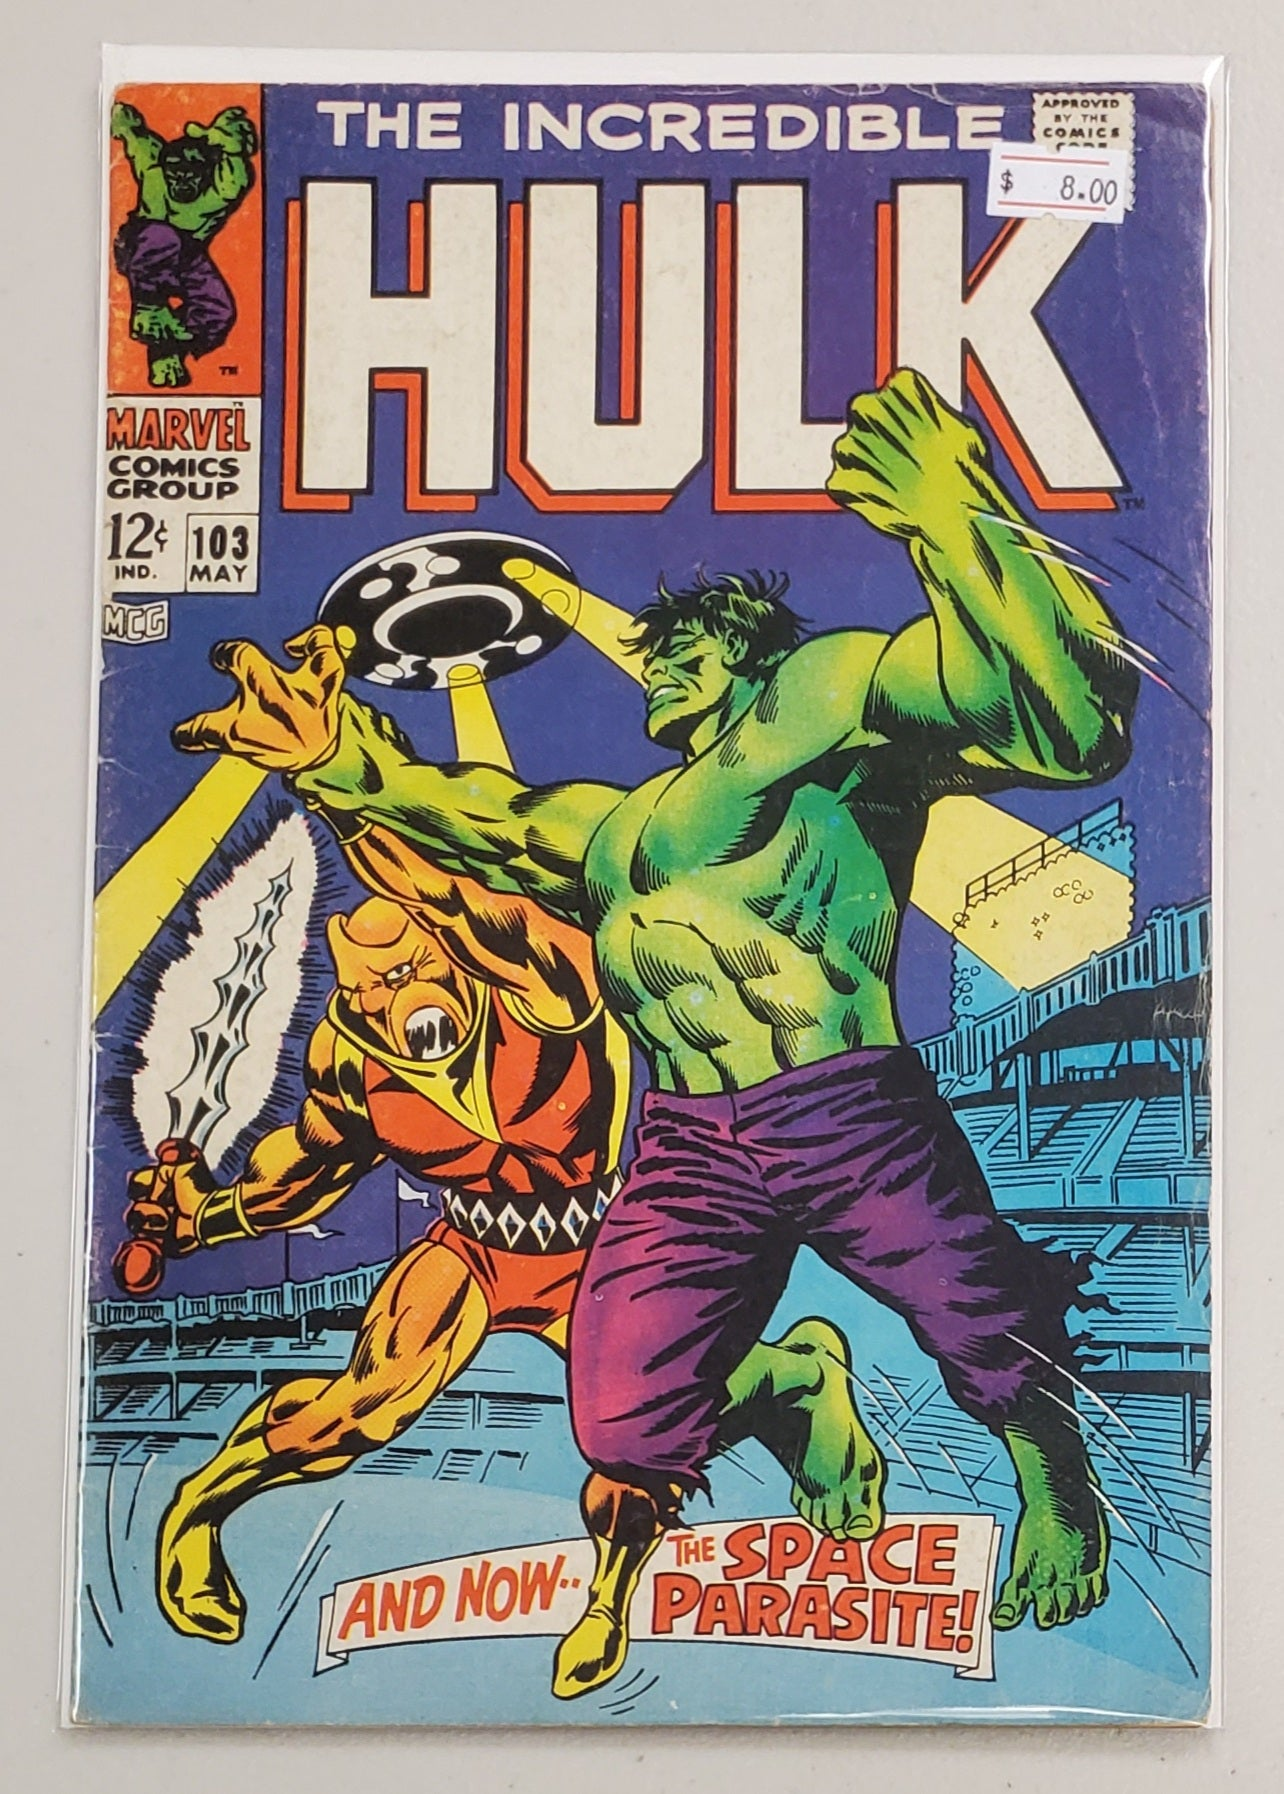 INCREDIBLE HULK #103 1968